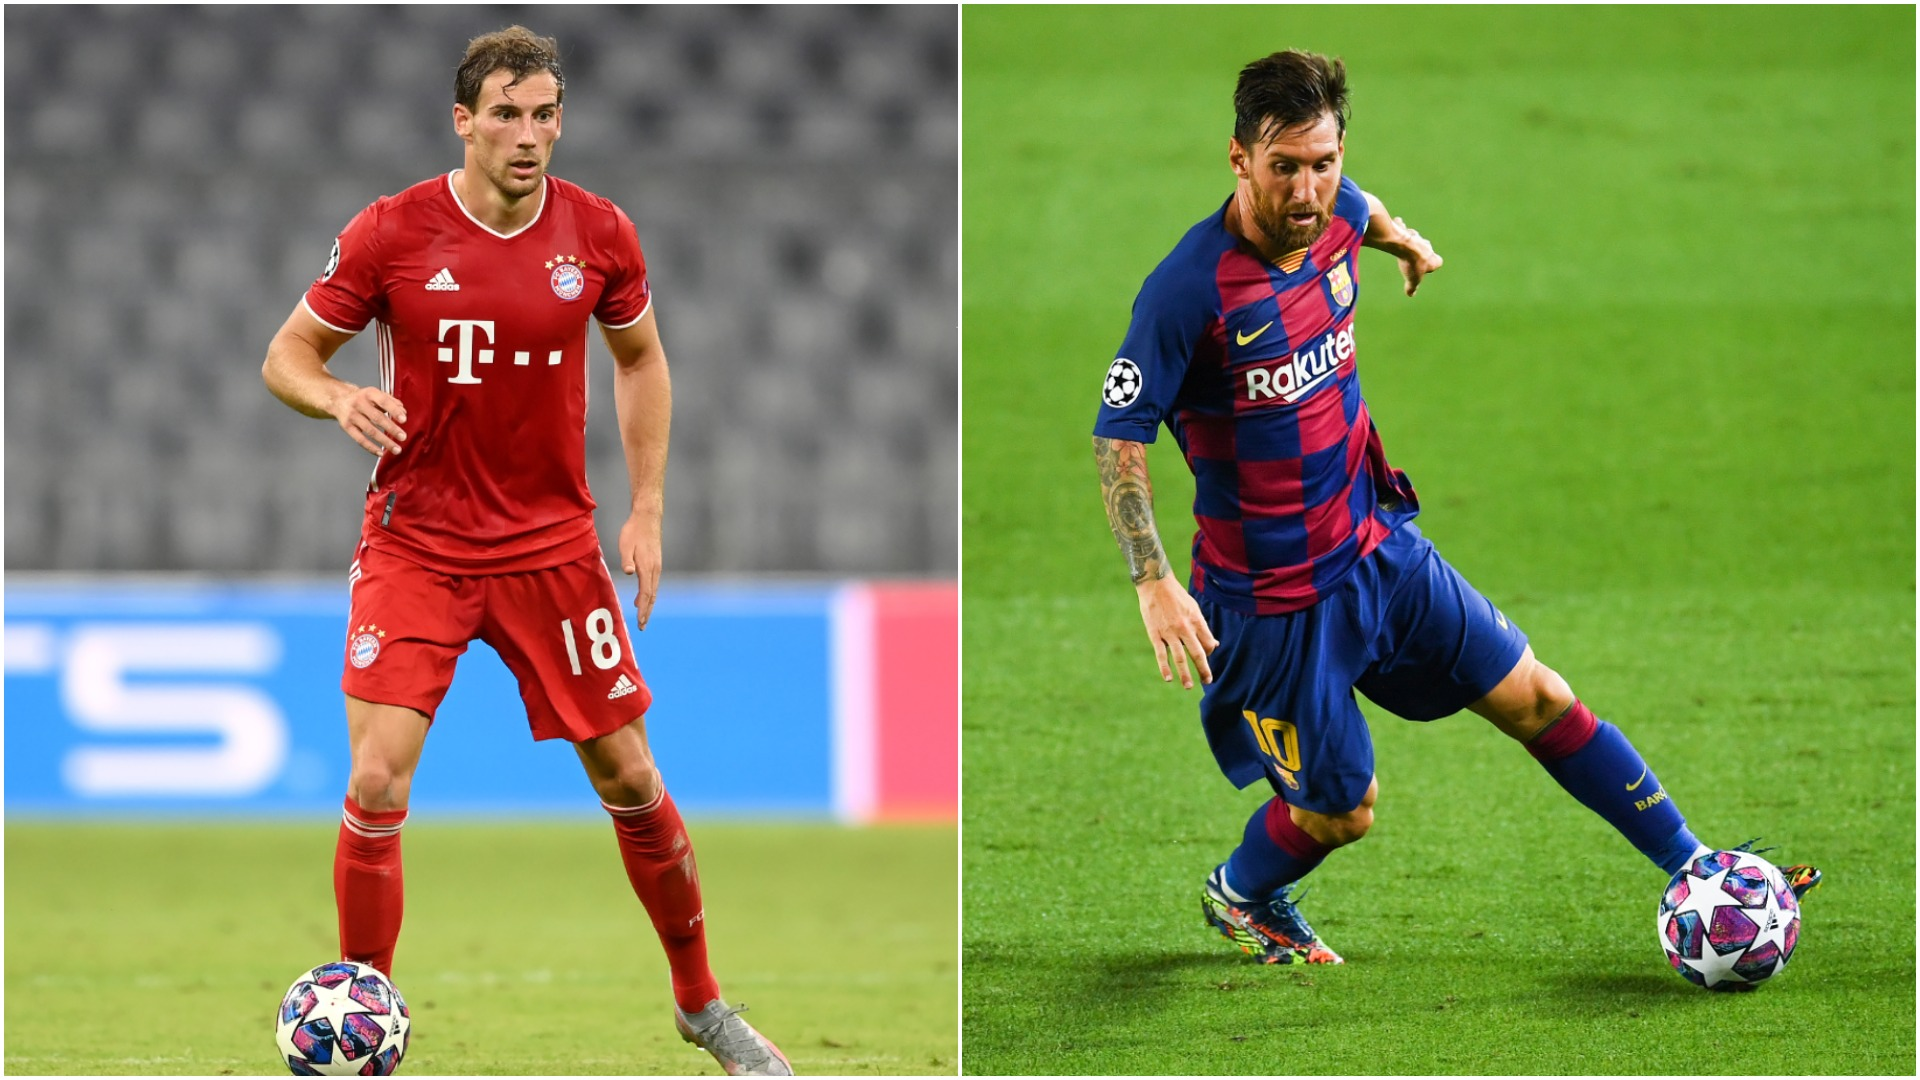 Bayern Munich chairman Karl-Heinz Rummenigge has expressed his big admiration for FC Barcelona star Lionel Messi ahead of their 2019/2020 UEFA Champions League duel. The Argentina captain is playing against the Bavarians in a match which could however condemn the Catalans to a season without titles. The sides meet in a one-legged quarter-final on Friday. […]